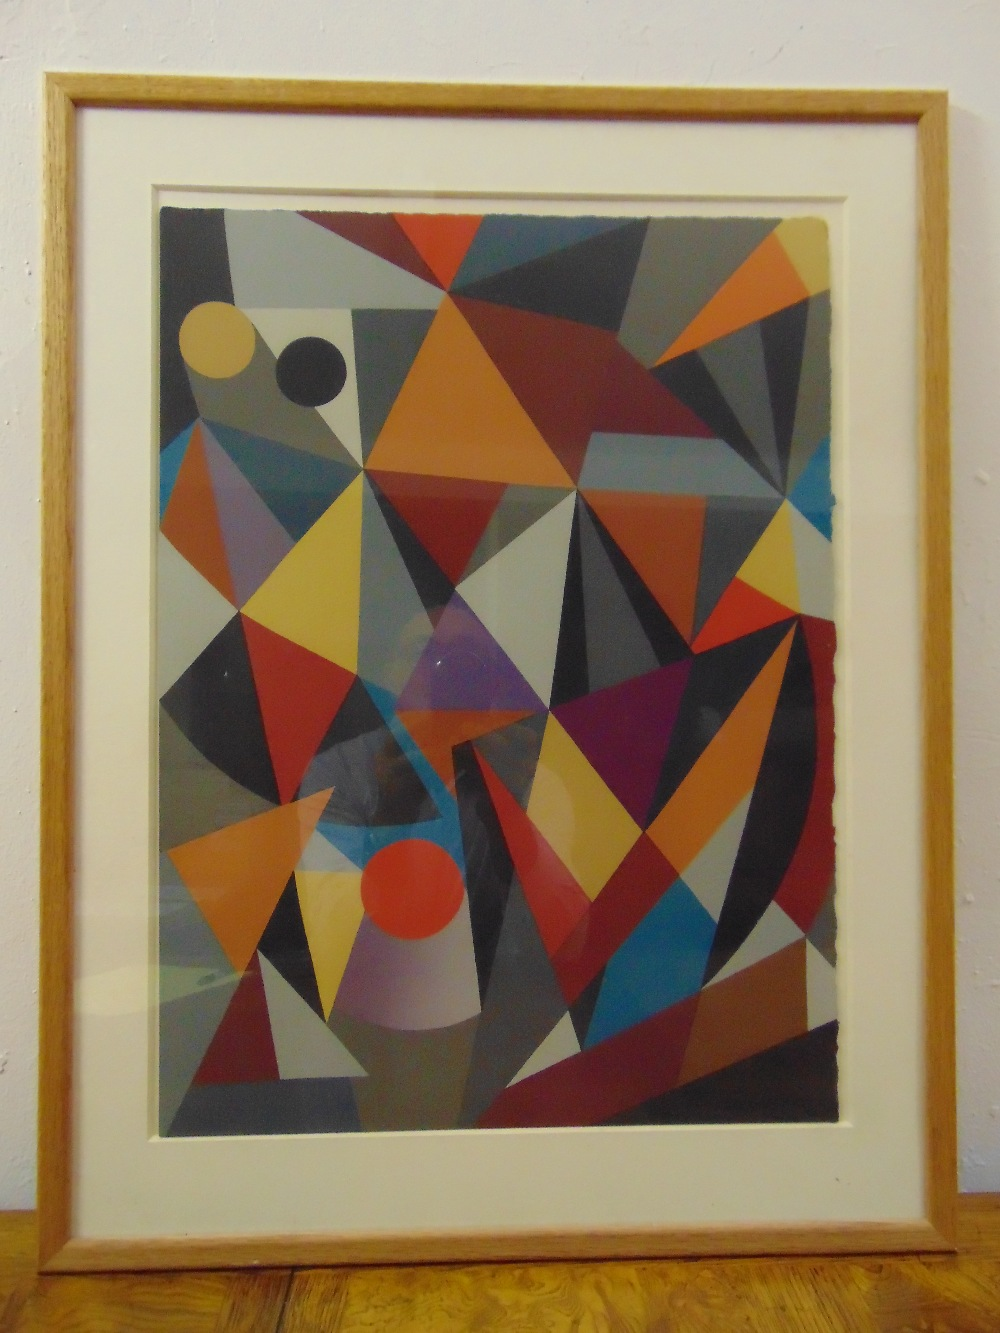 Lot 32 - C. Goran Karlsson framed and glazed limited edition screen print abstract 89/200, signed bottom